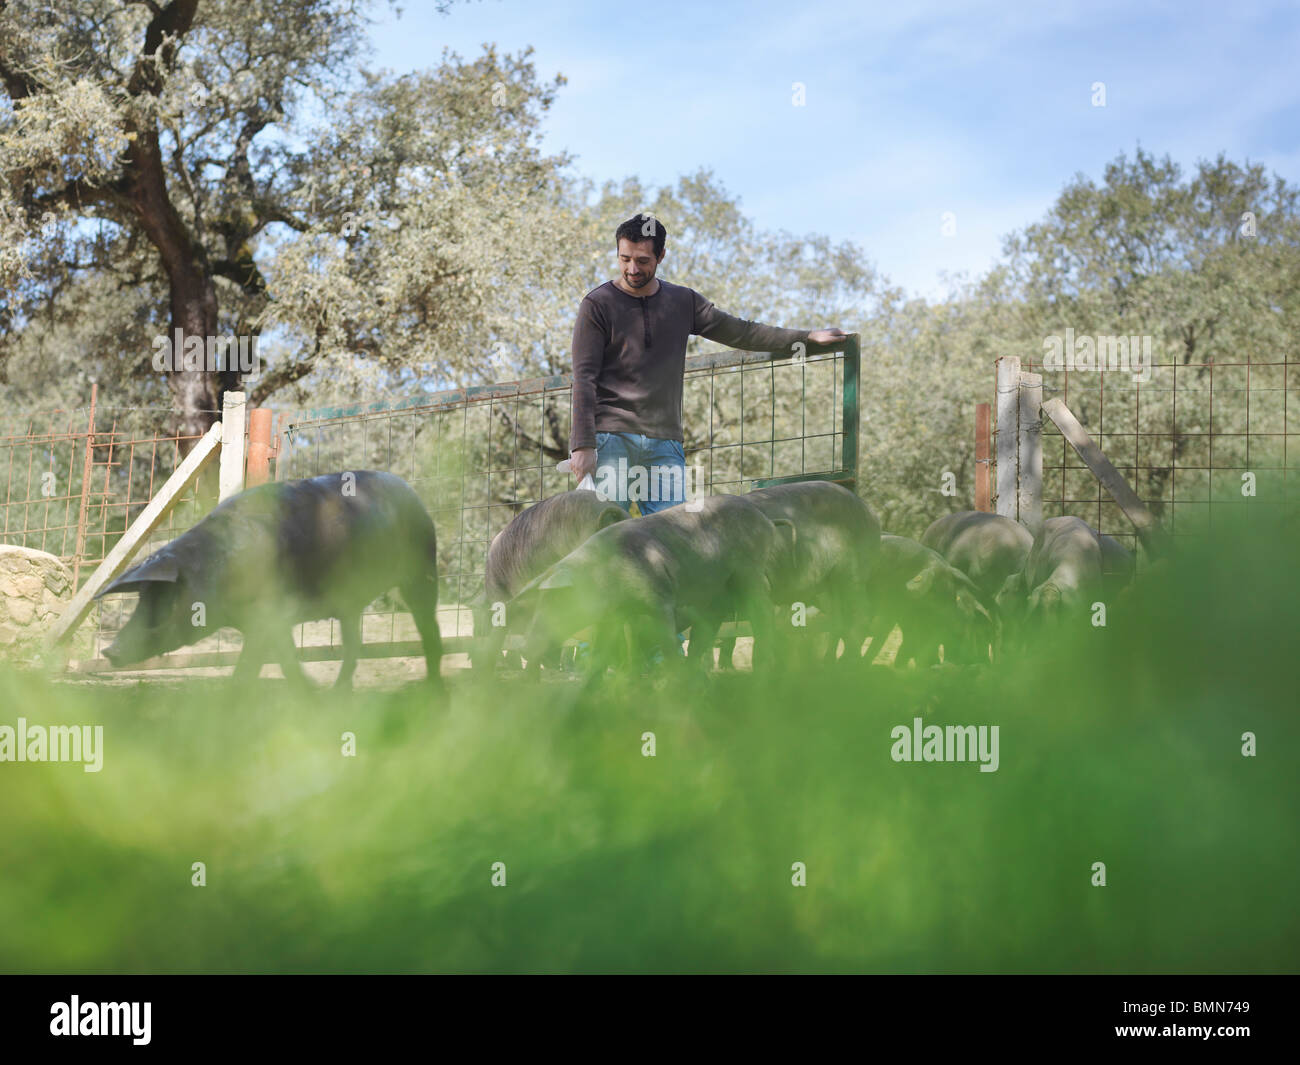 Man on farm opening gate for pigs - Stock Image